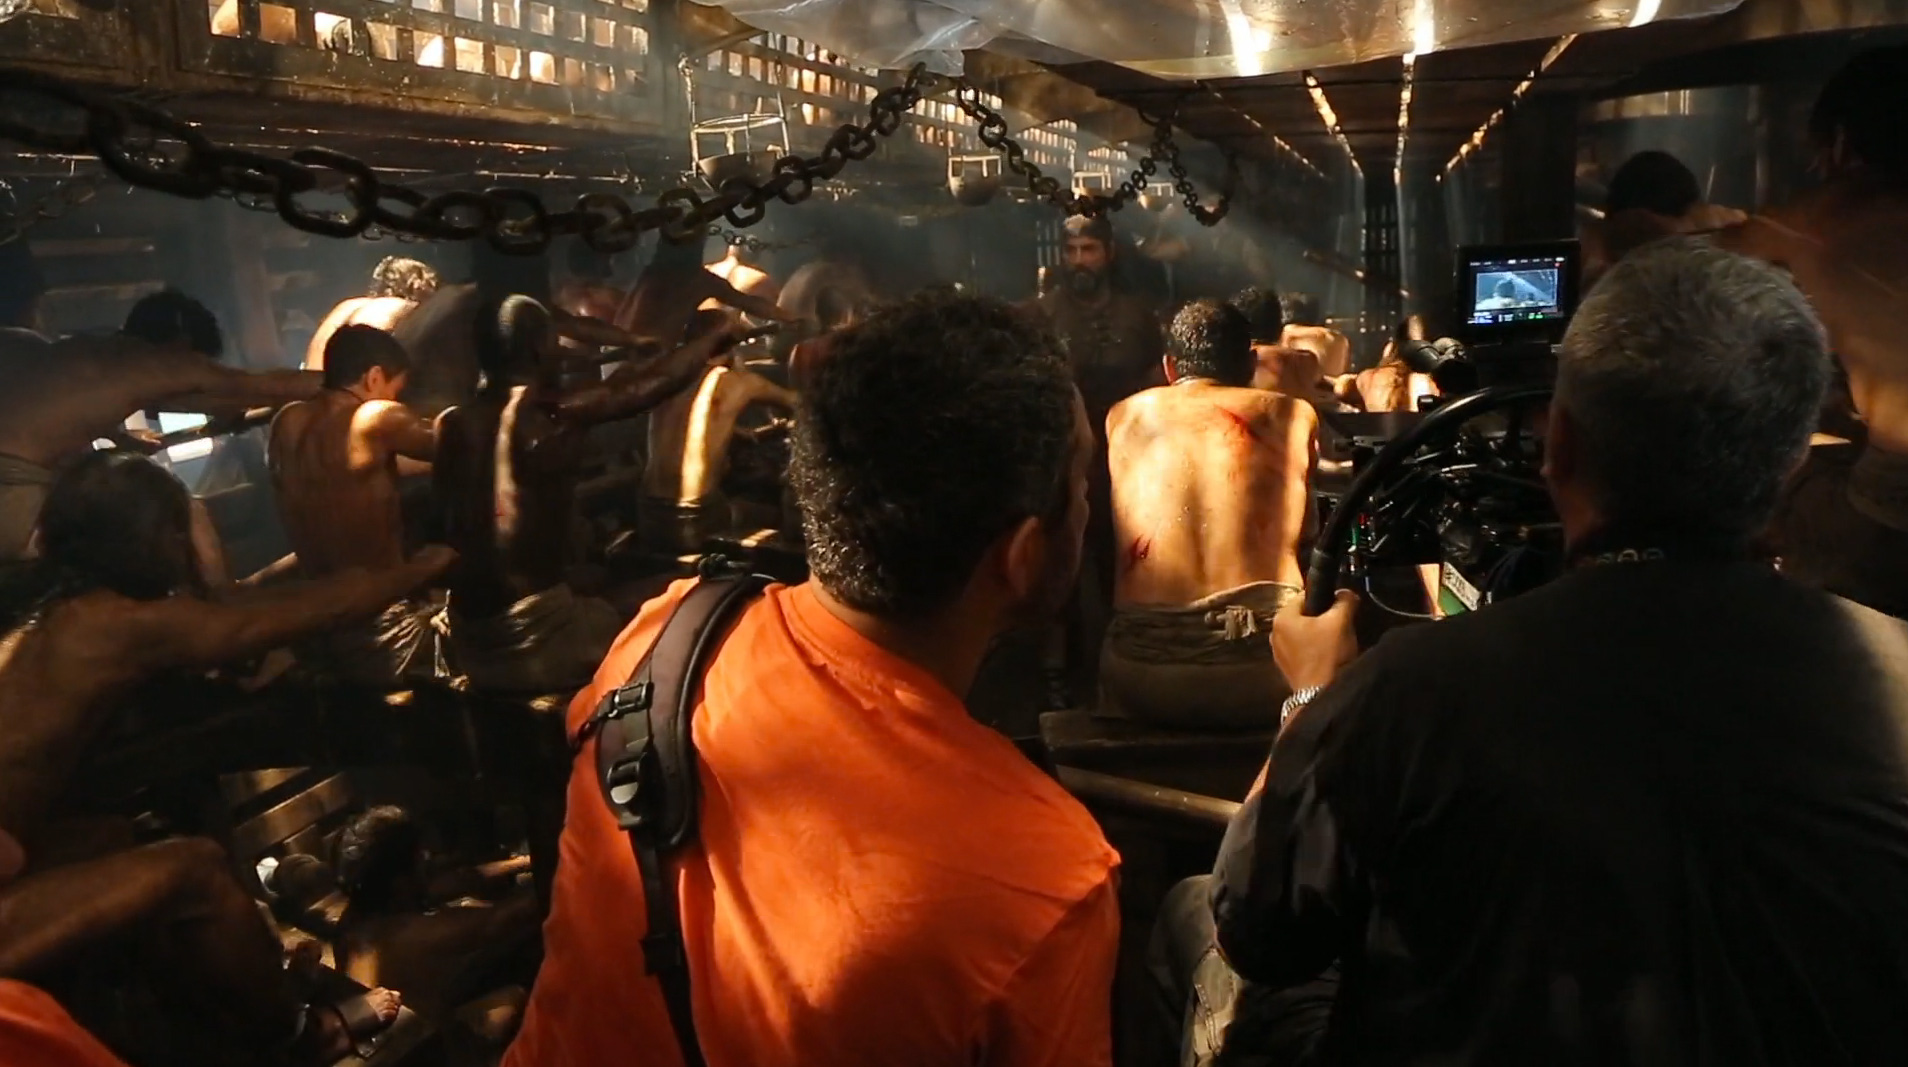 On the set of the galley slave ship, where Ben Hur gains his muscles.